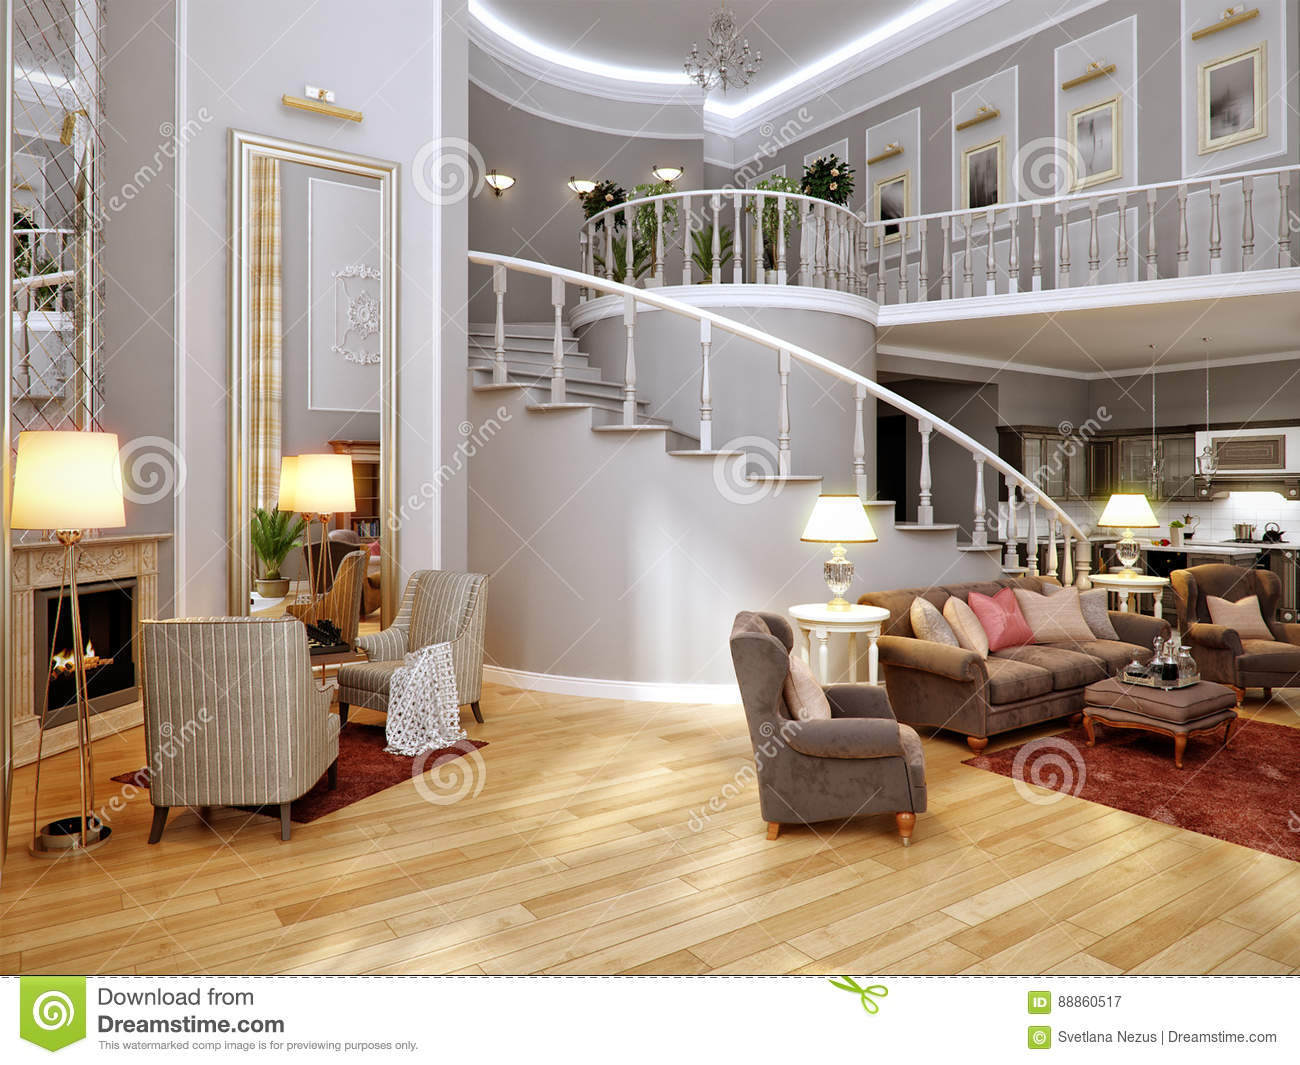 Classic Living Room Kitchen And Dining Interior Design With Gray Walls Big Mirrors Fireplace 3d Rendering